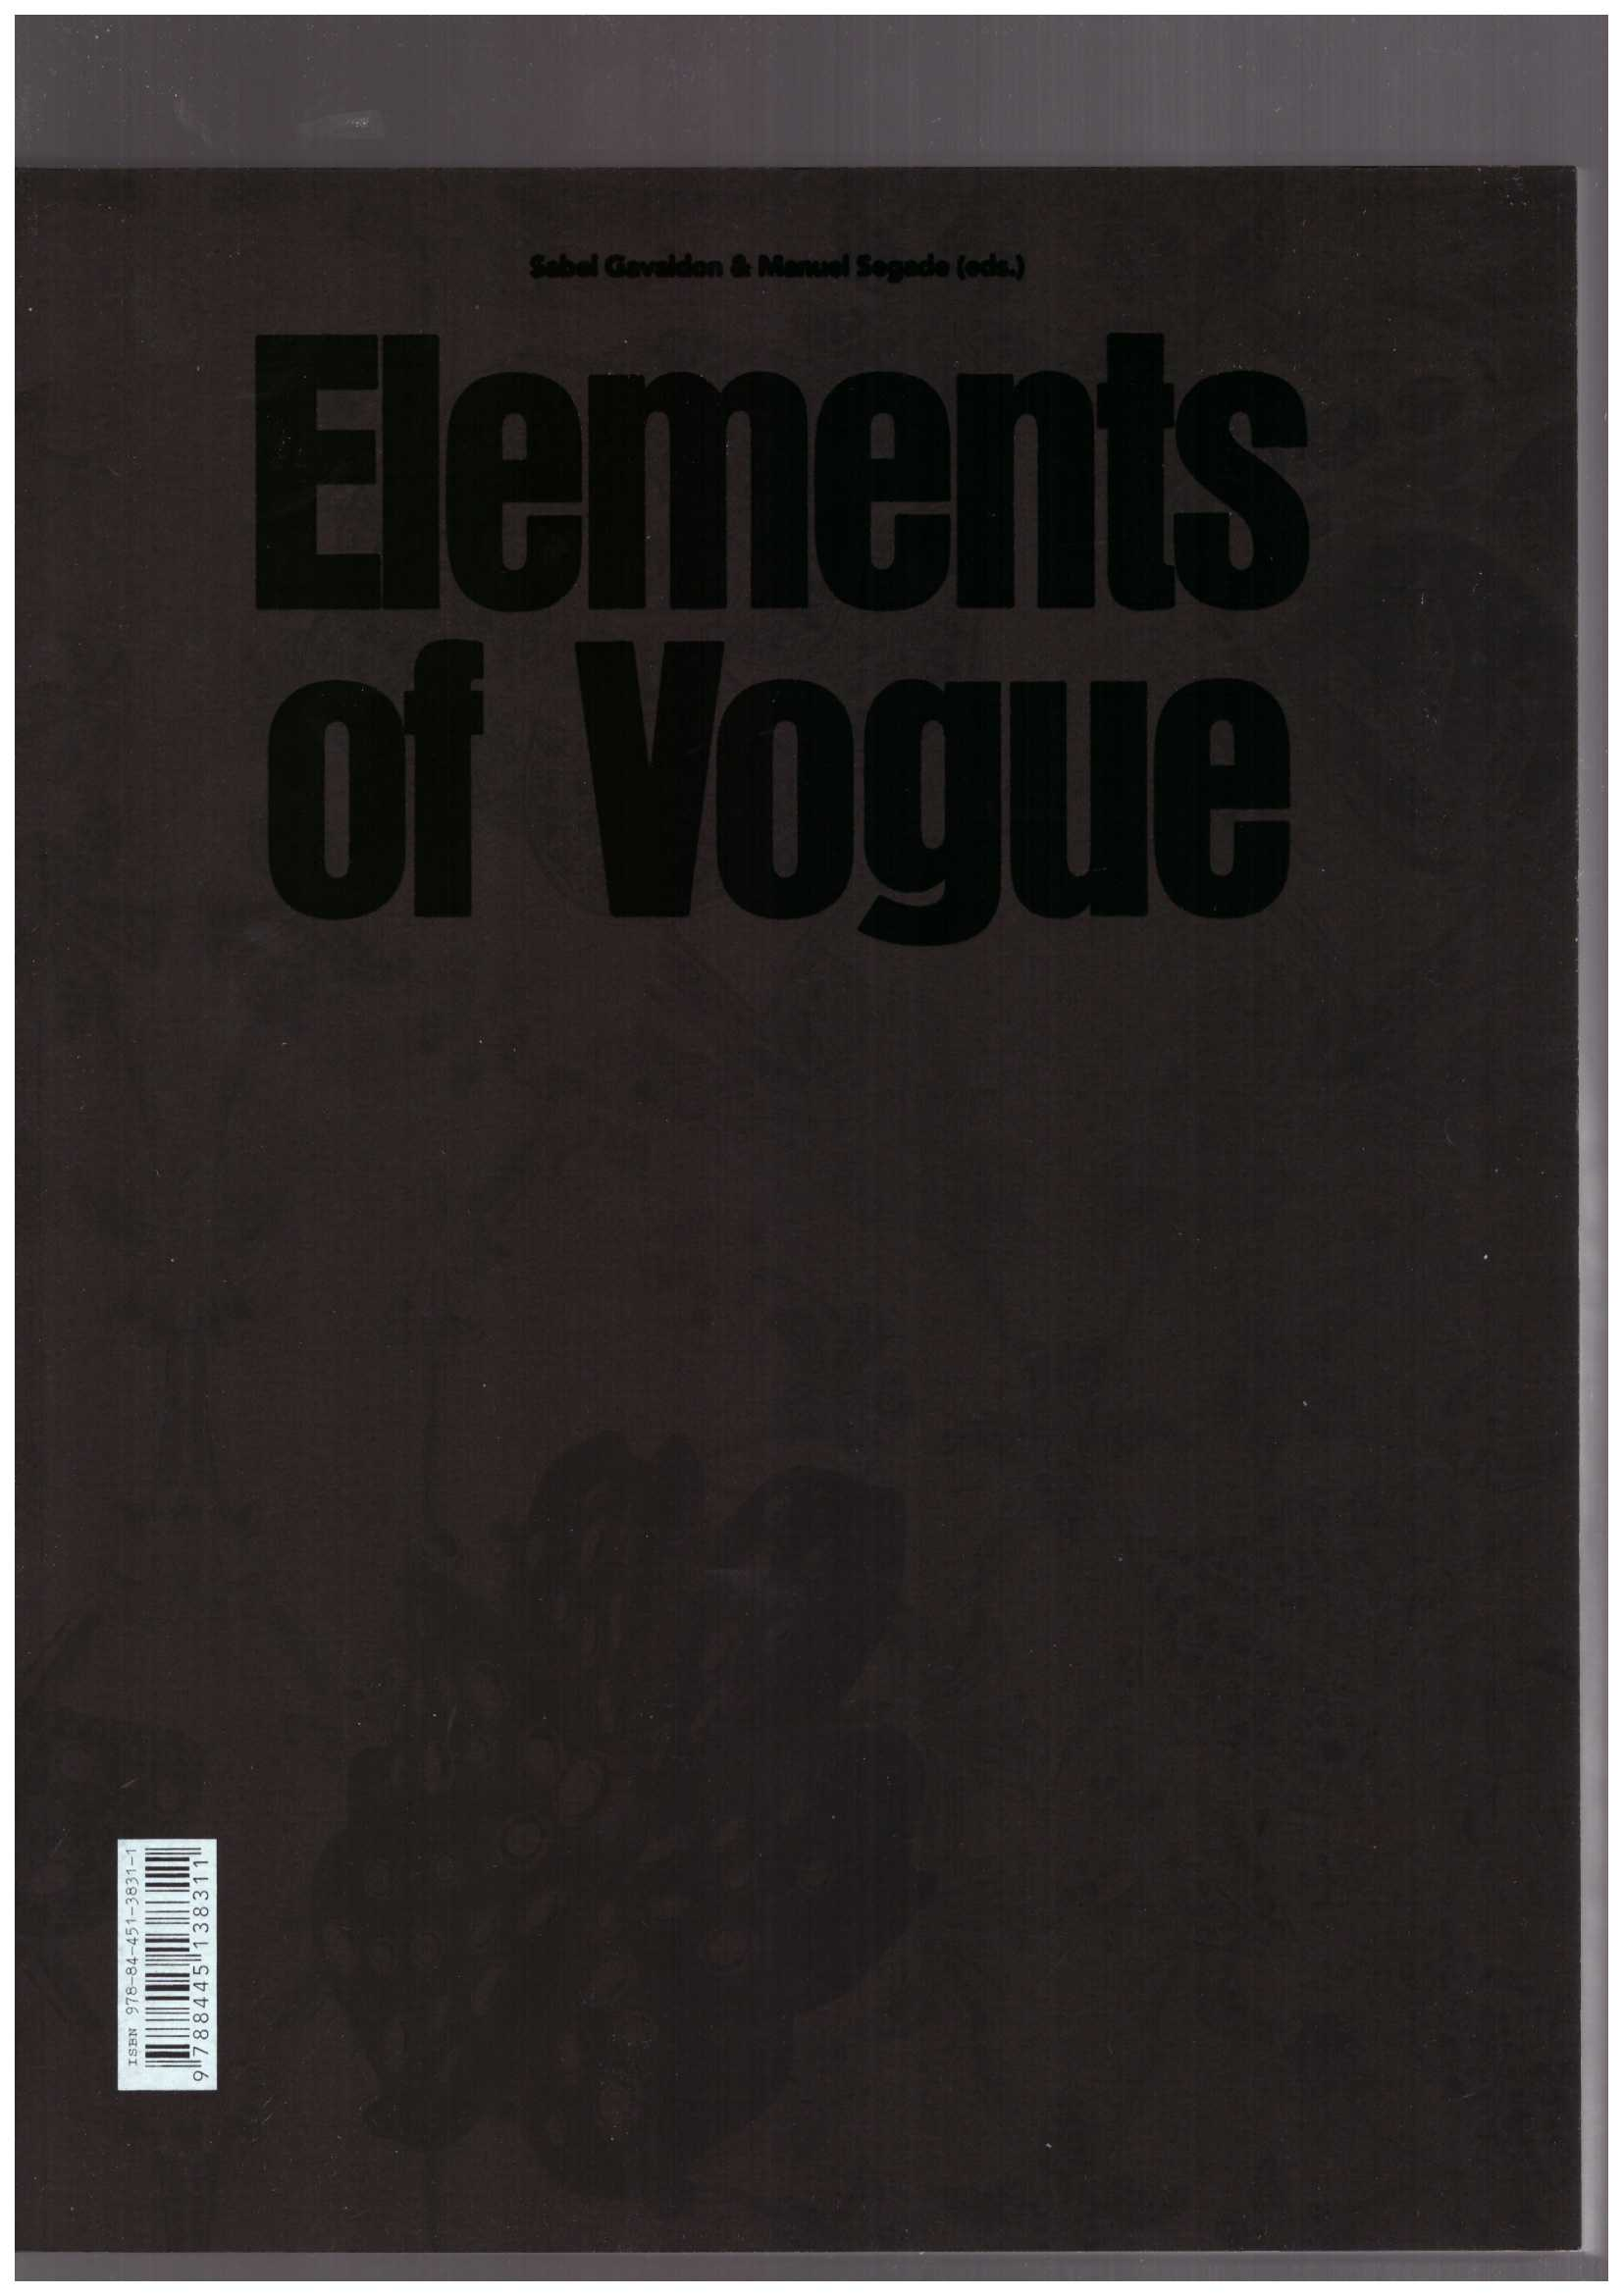 GAVALDON, Sabel Gavaldon; SEGADE, Manuel (eds.) - Elements of Vogue